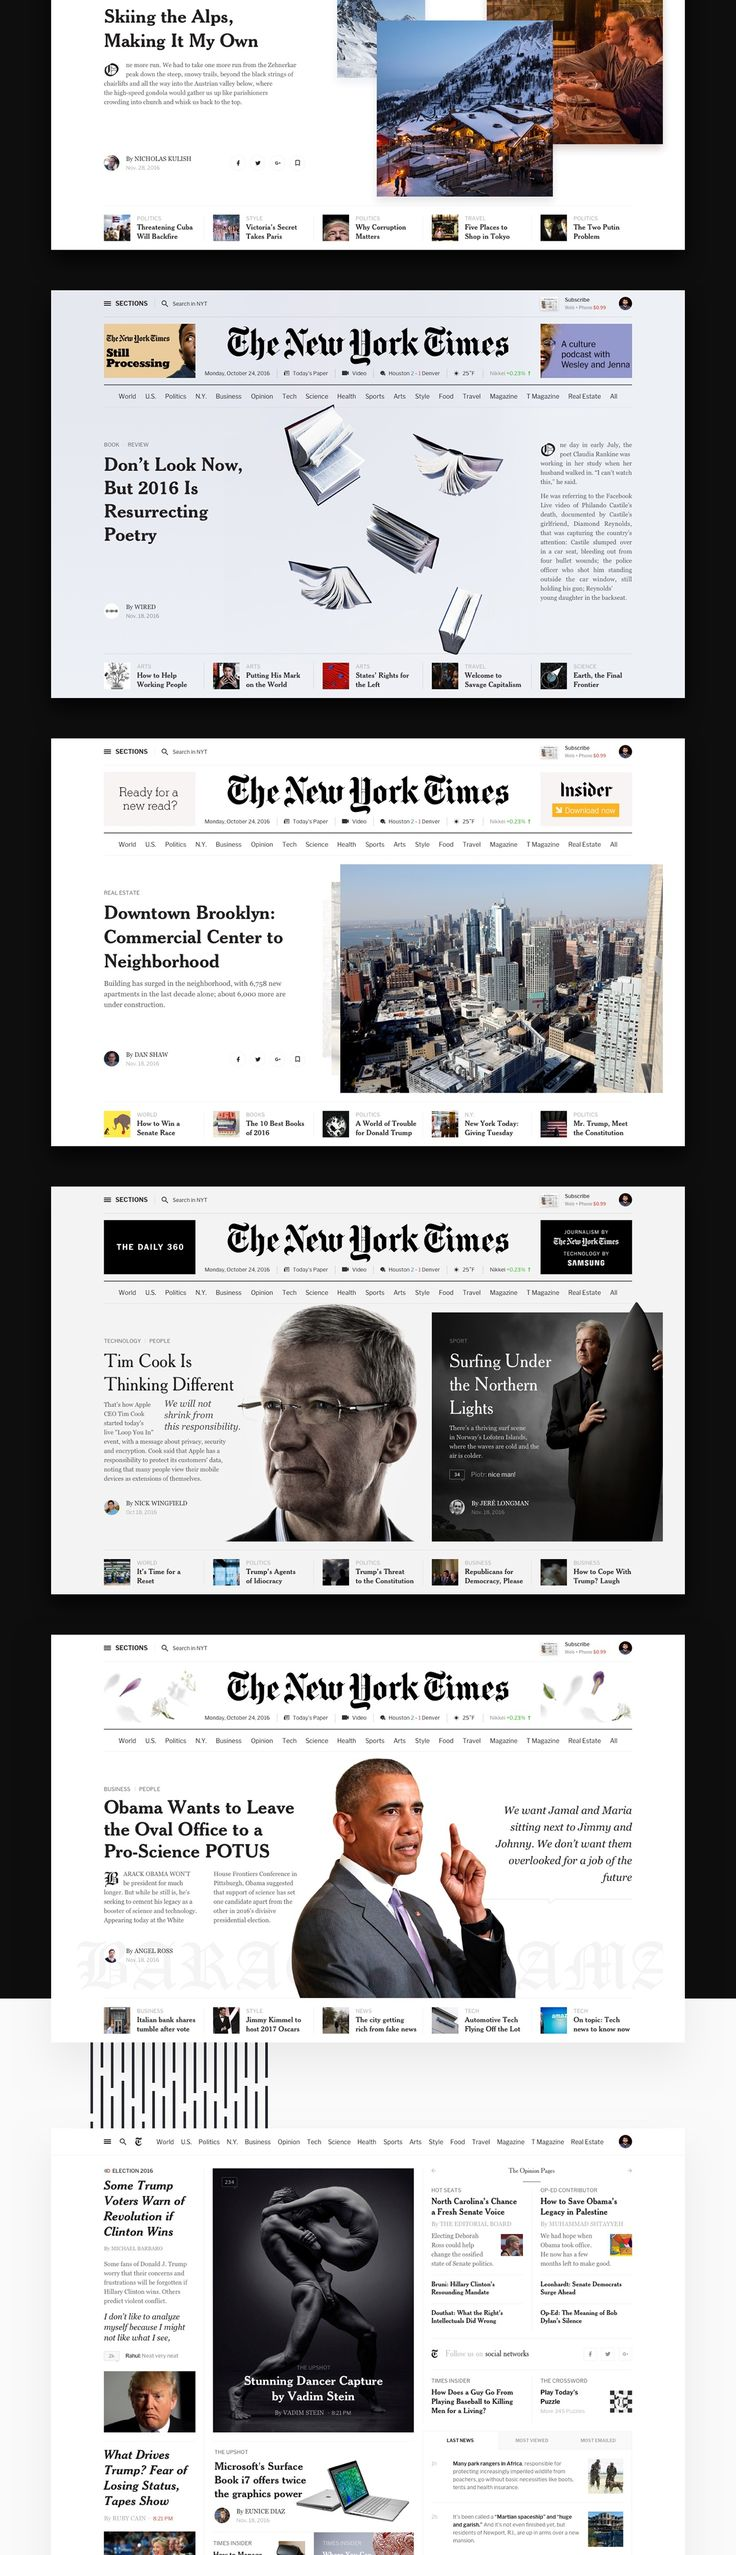 The New York Times Redesign on Behance